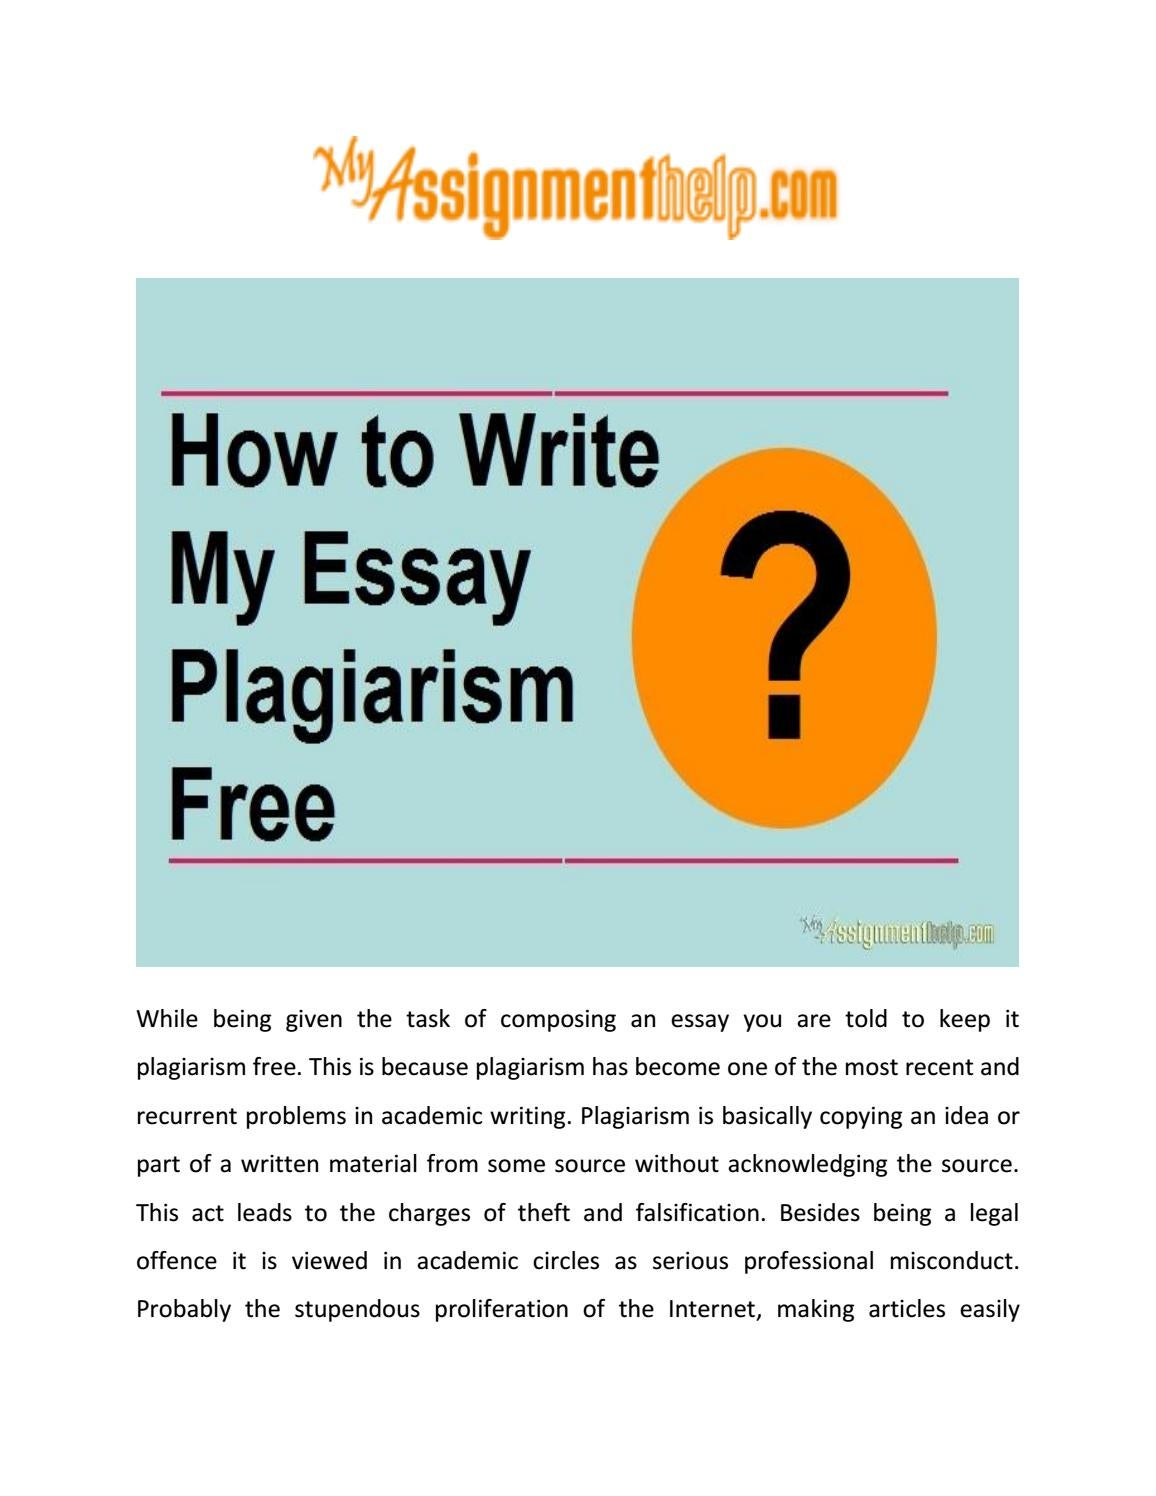 check your own essay for plagiarism